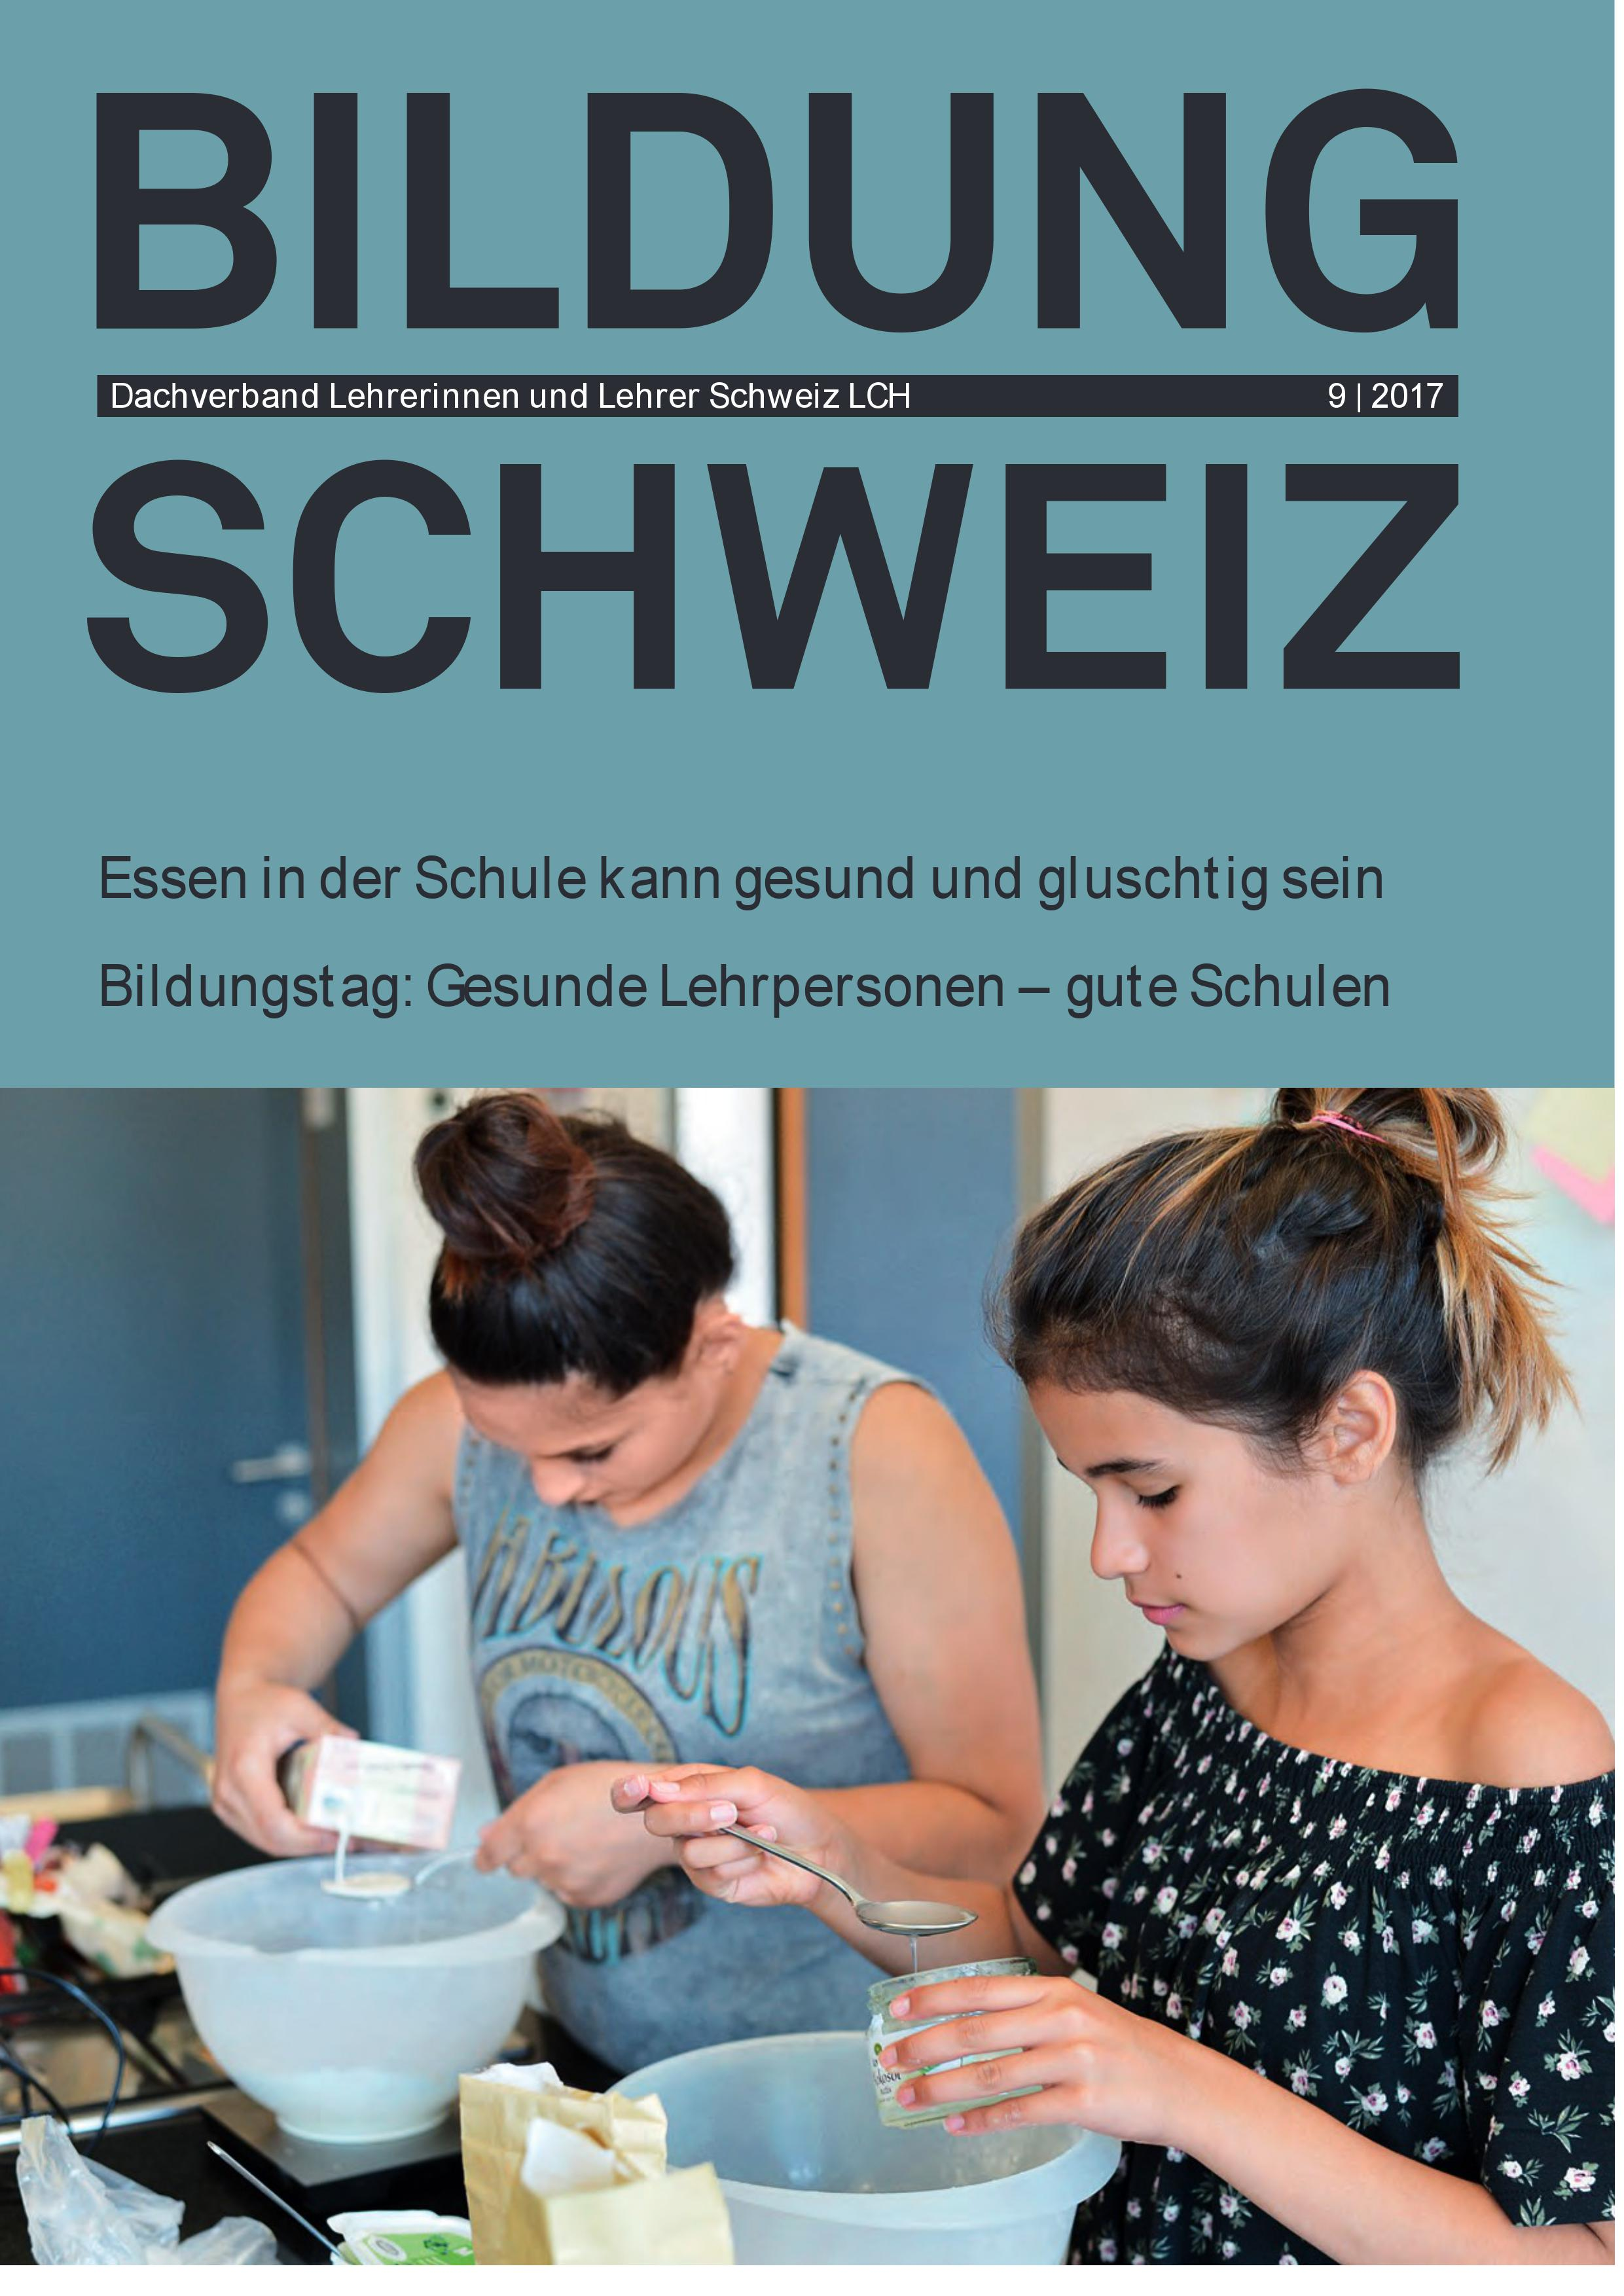 https://www.lch.ch/fileadmin/files/documents/BILDUNG_SCHWEIZ/2017/1709.pdf